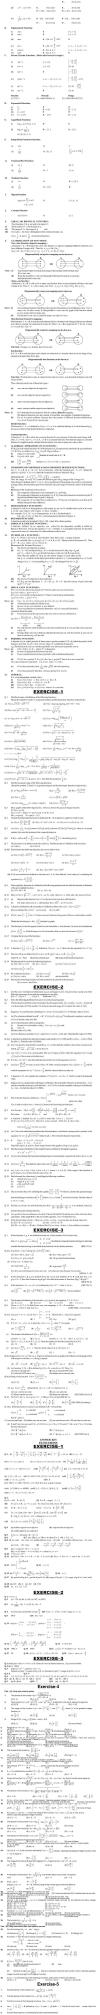 Maths Study Material - Chapter 7